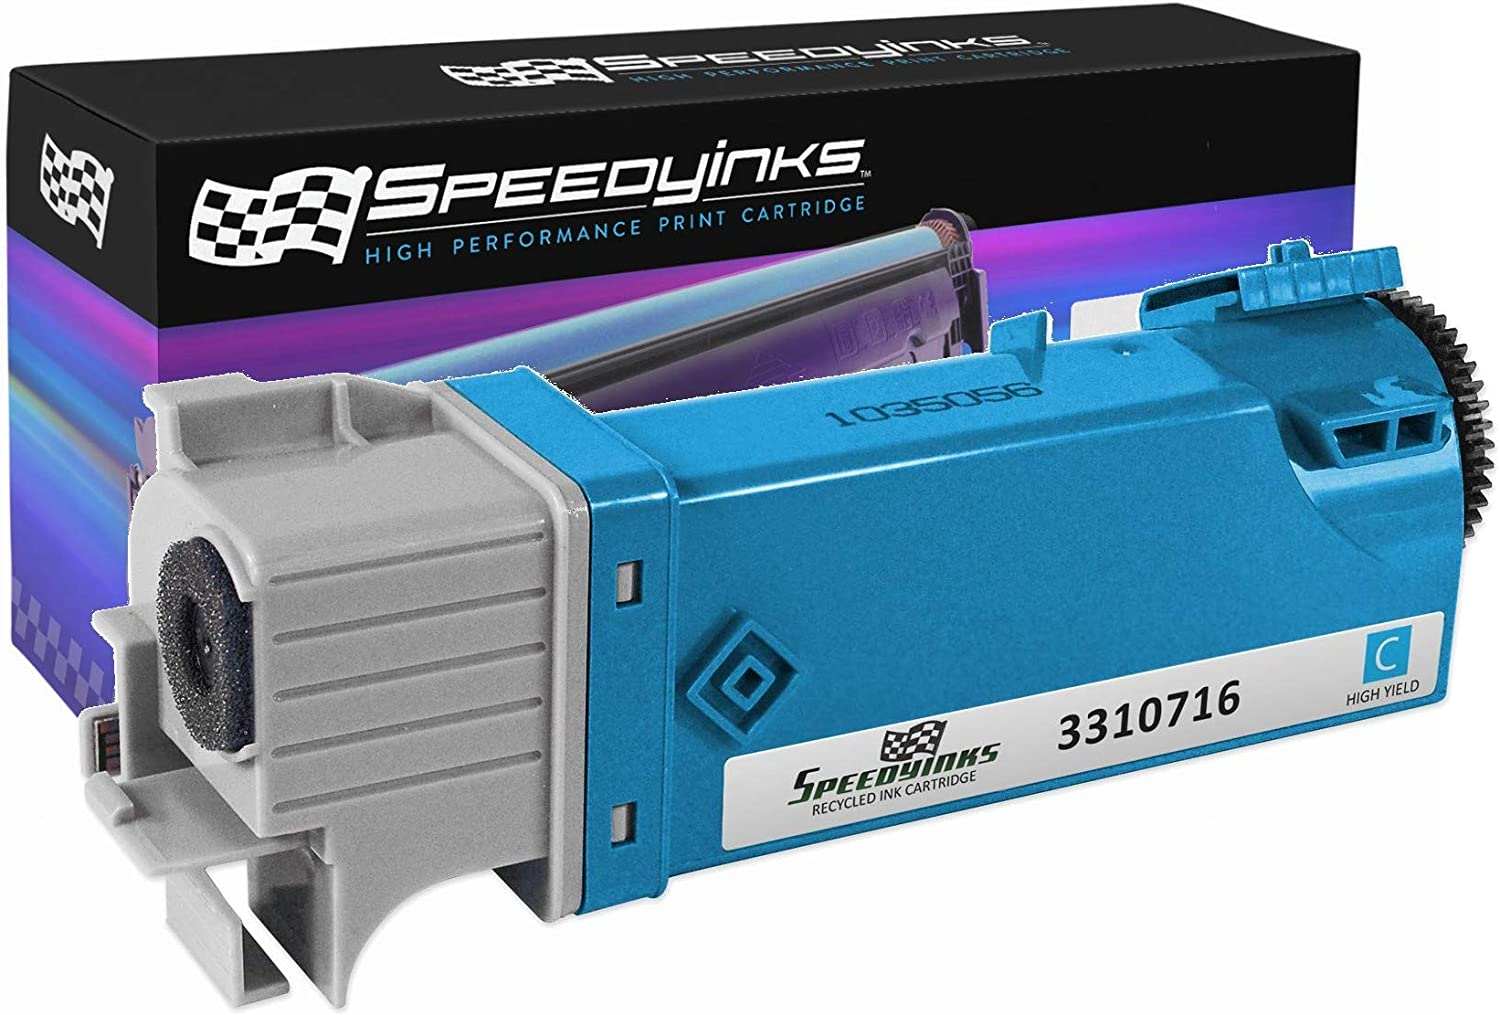 Speedy Inks Compatible Toner Cartridge Replacement for Dell 2150  THKJ8 (331-0716) High-Yield (Cyan)